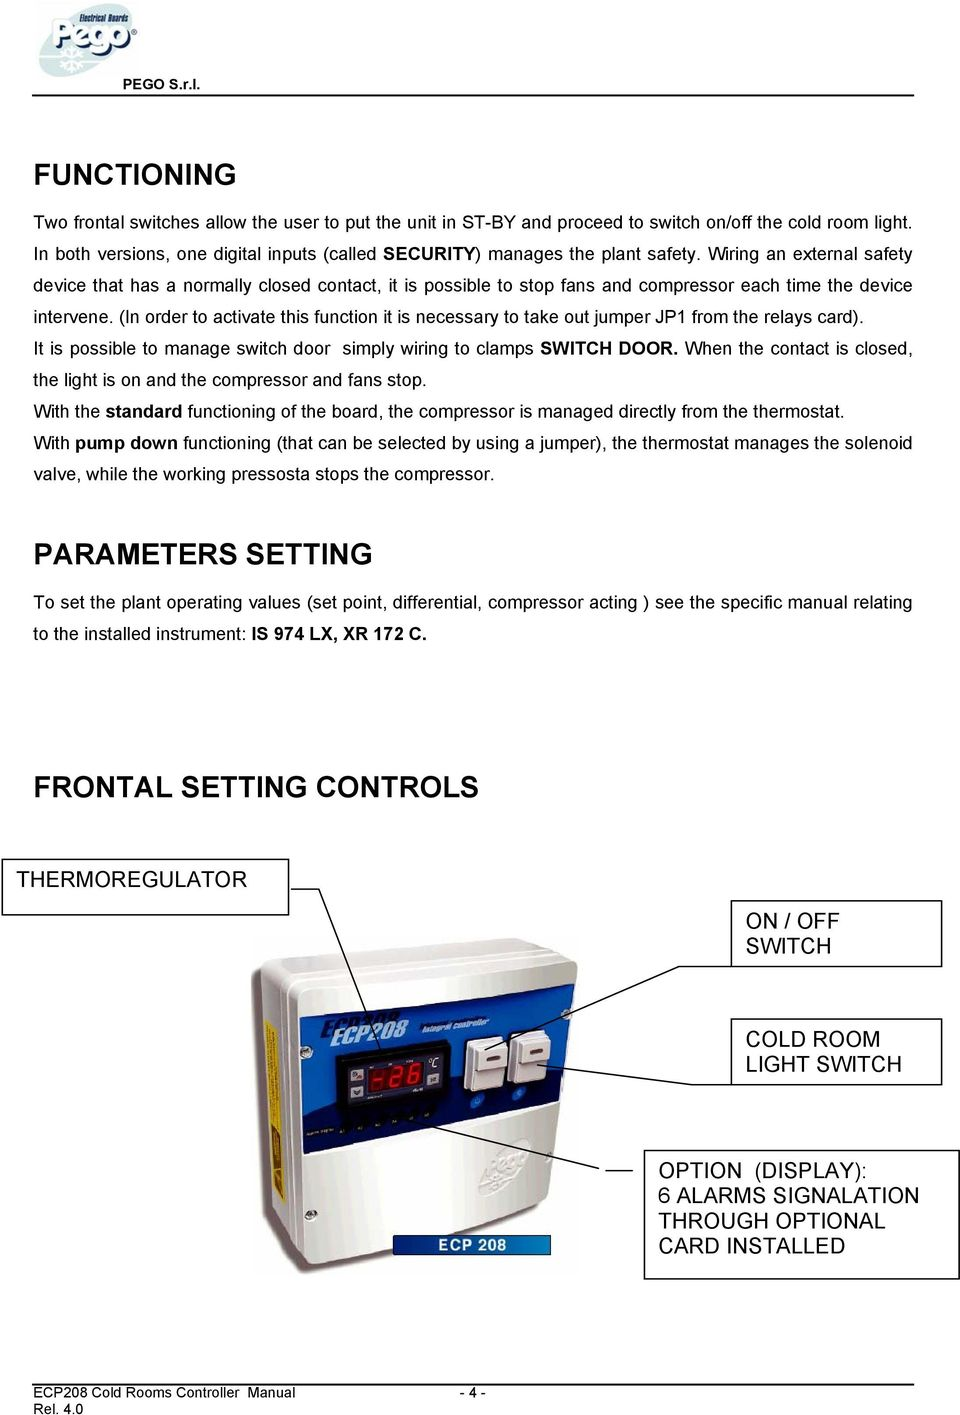 ecp 208 cold rooms controllers user s manual pdf wiring an external safety device that has a normally closed contact it is possible to